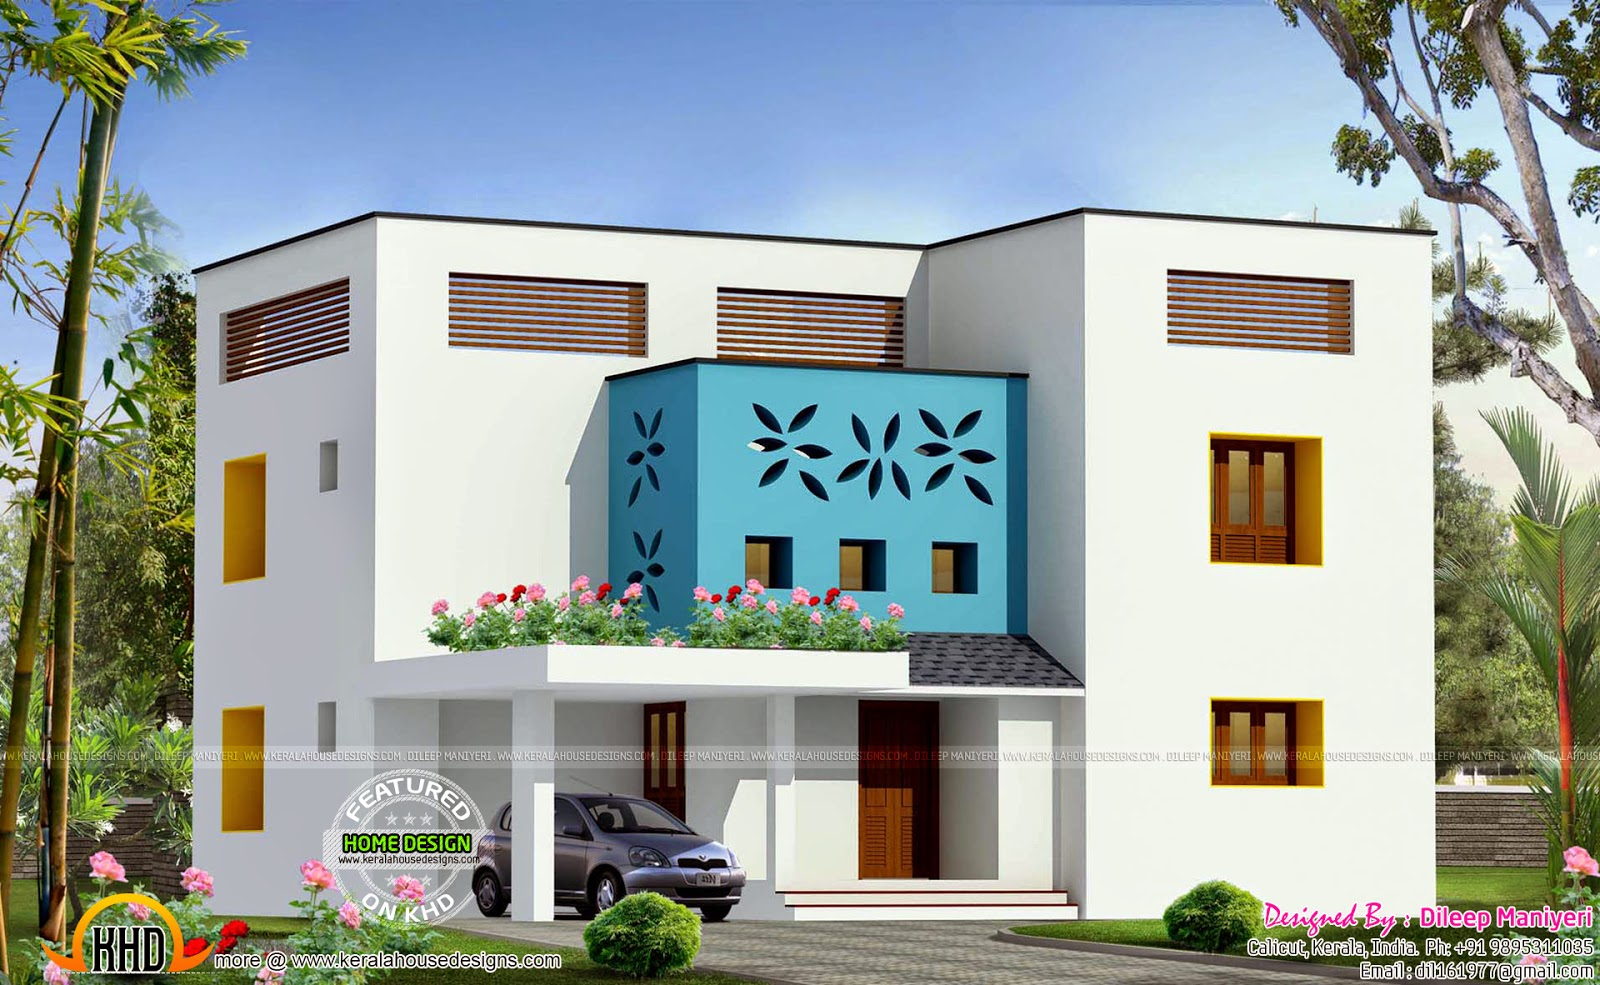 223 sq m contemporary villa exterior keralahousedesigns for Flat exterior design